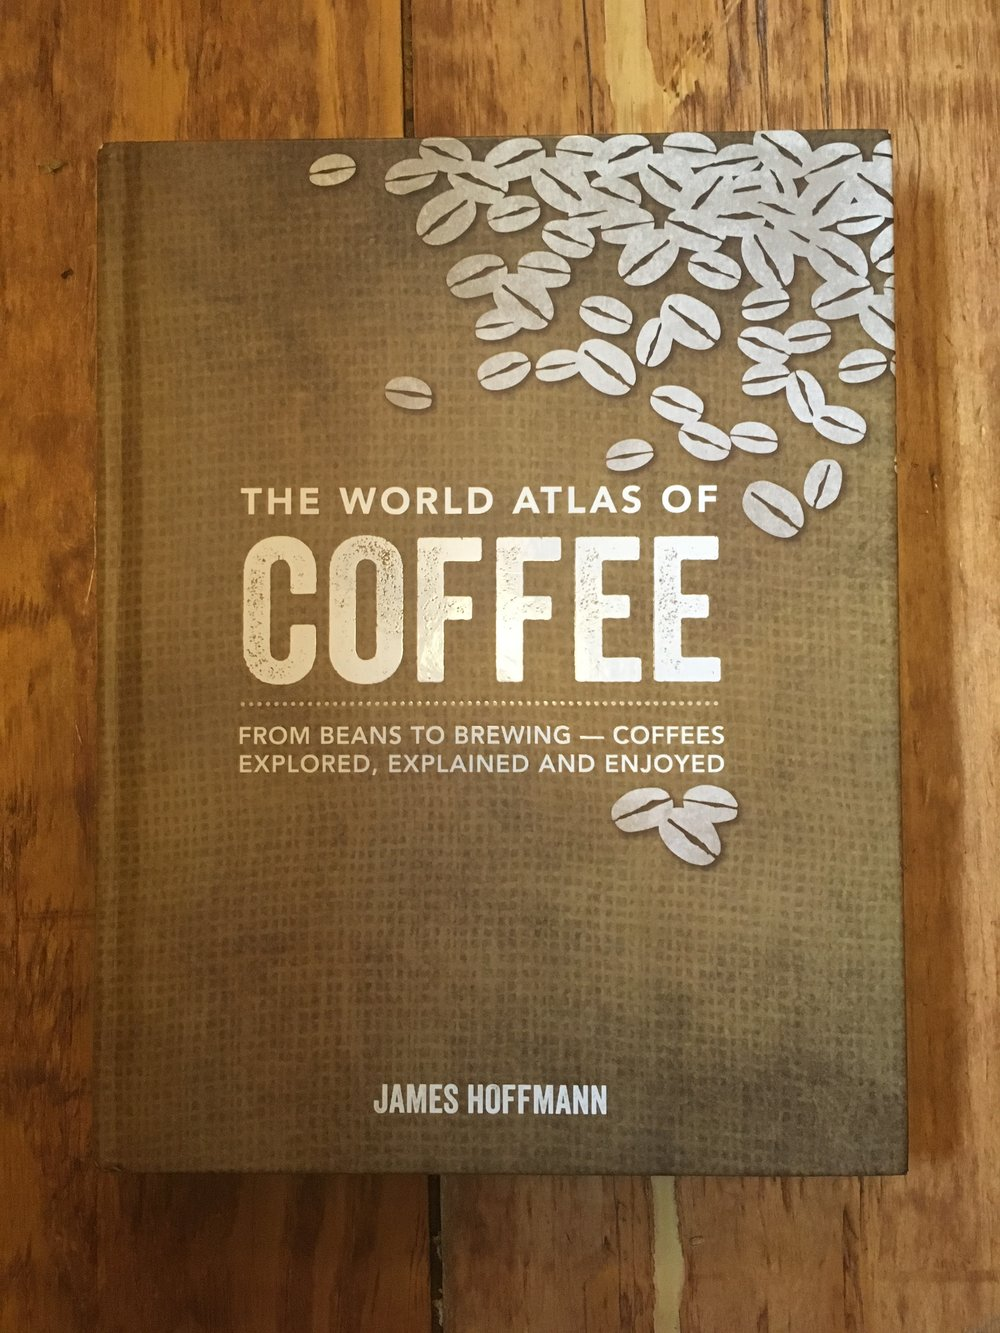 If you like coffee, buy this book on Amazon!